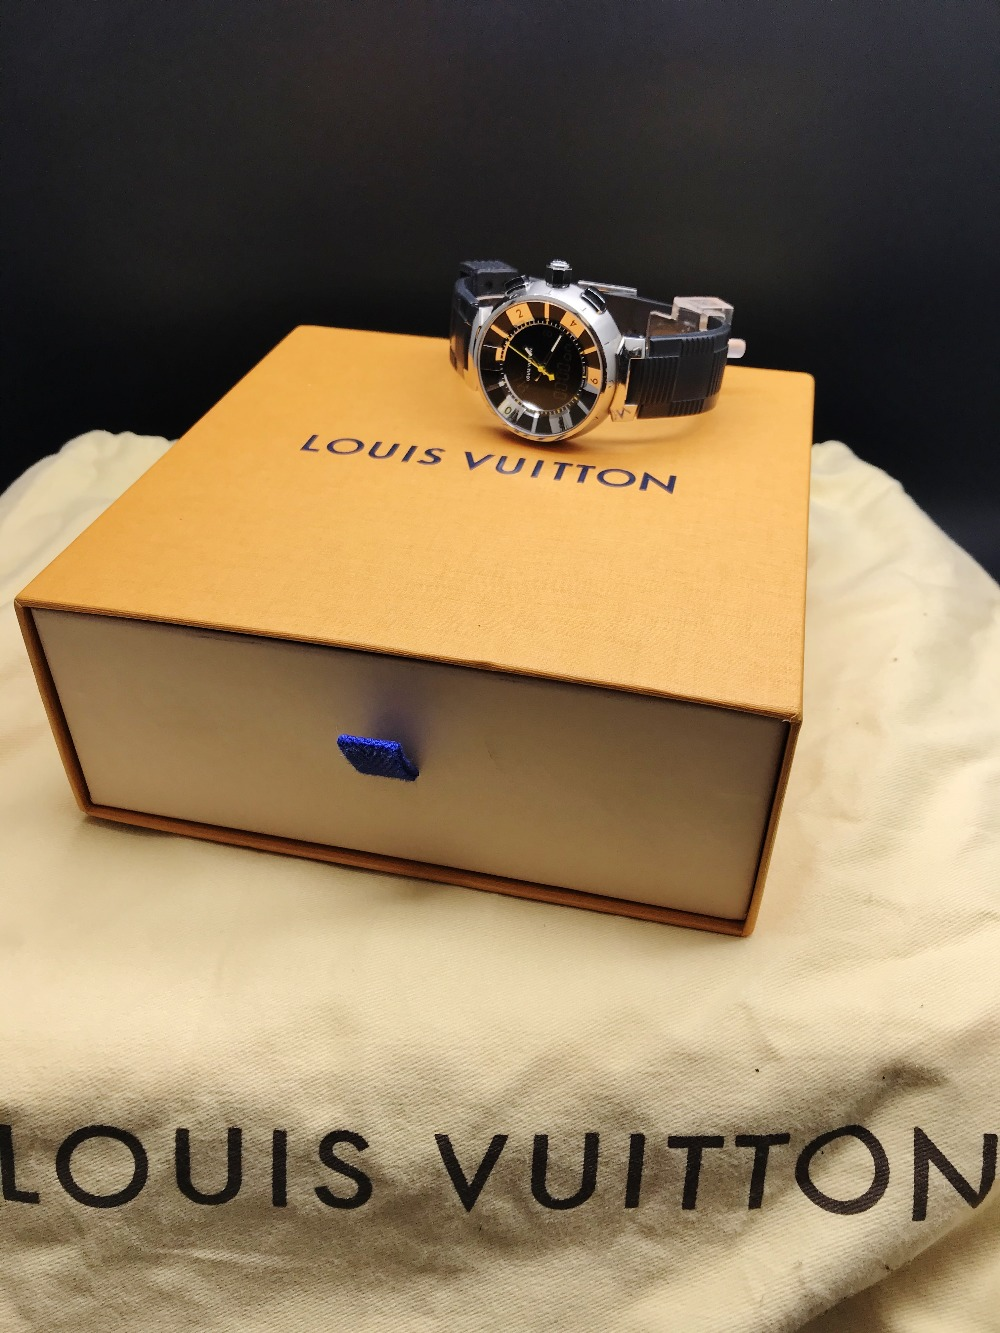 Louis Vuitton Tambour Black Analogue & Digital Edition 41.5MM, Ref Q118F - Image 3 of 4